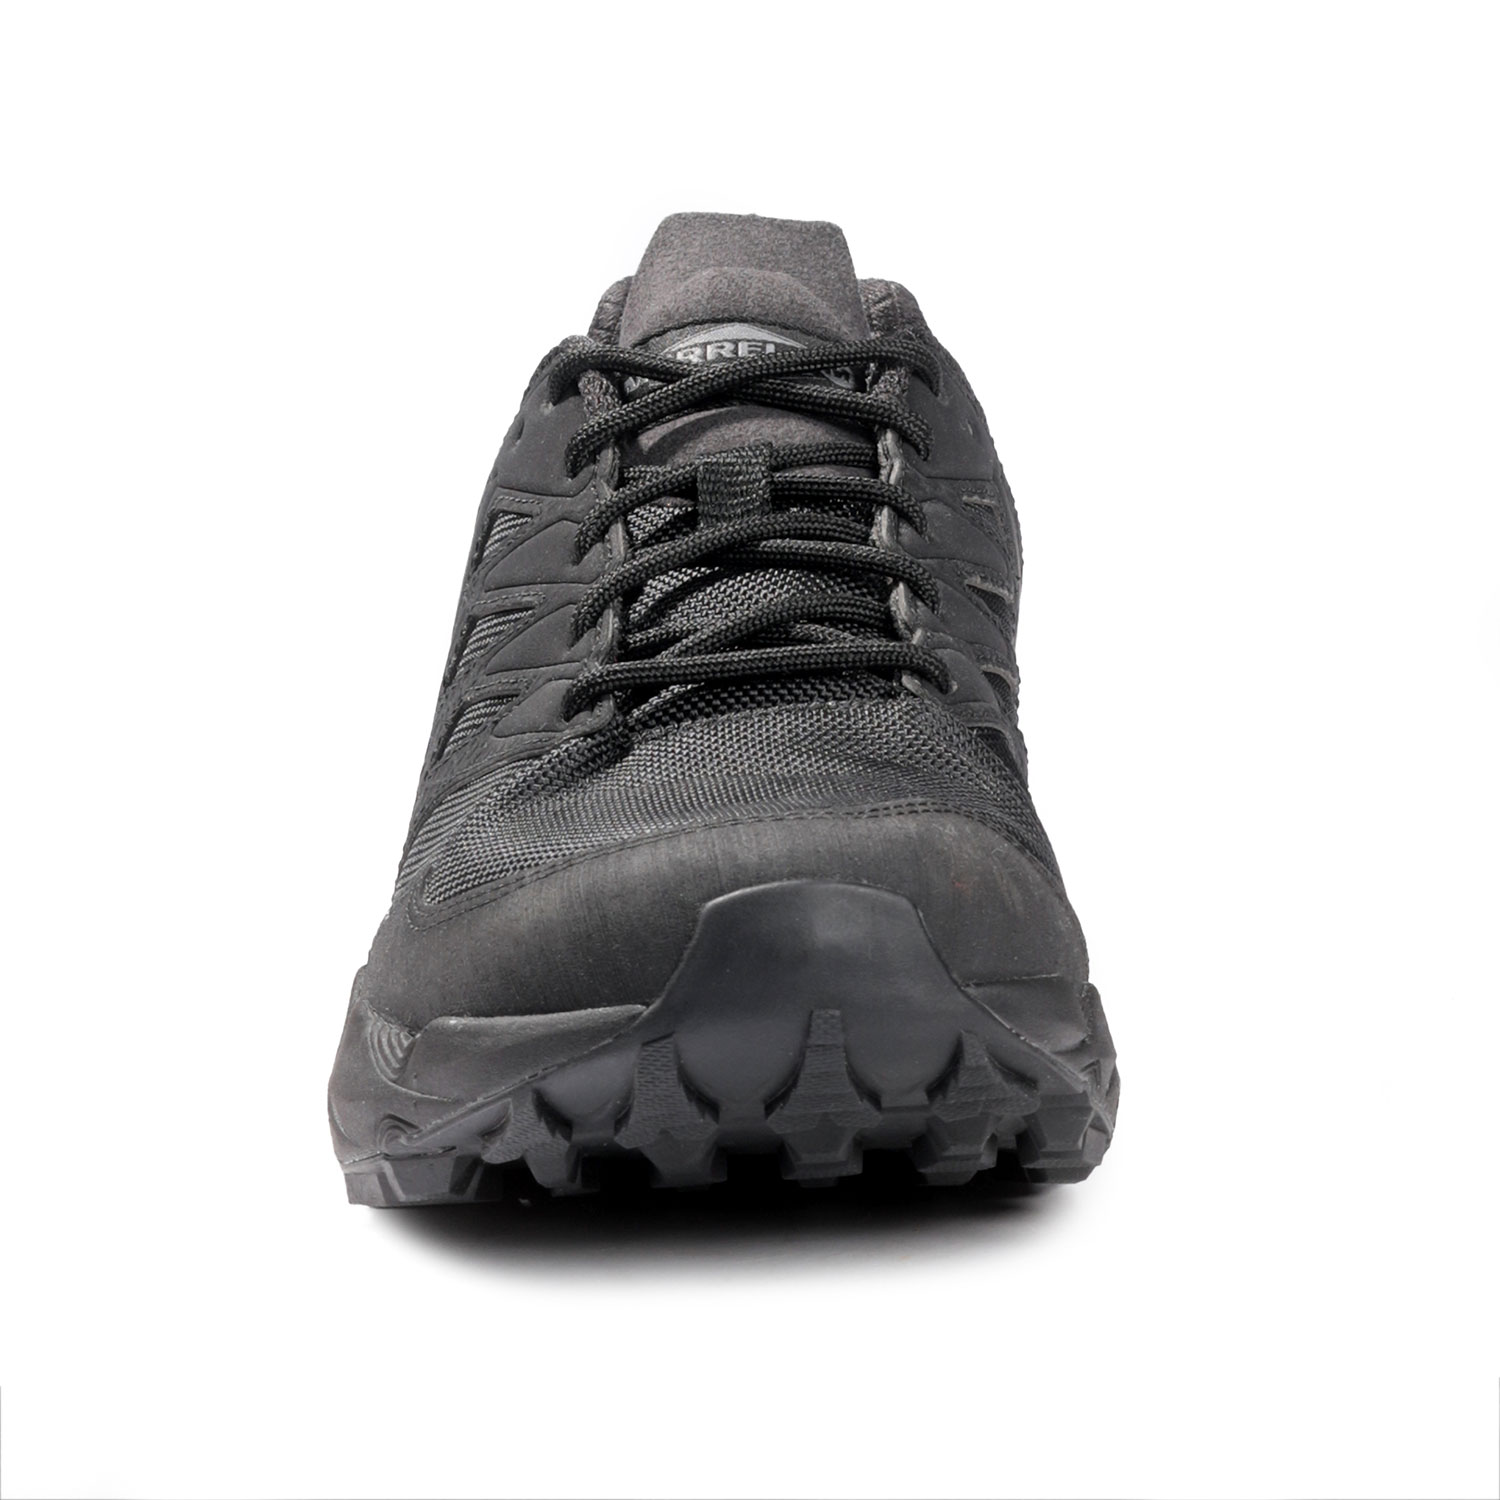 Merrell Womens Agility Peak Tactical Training Shoe